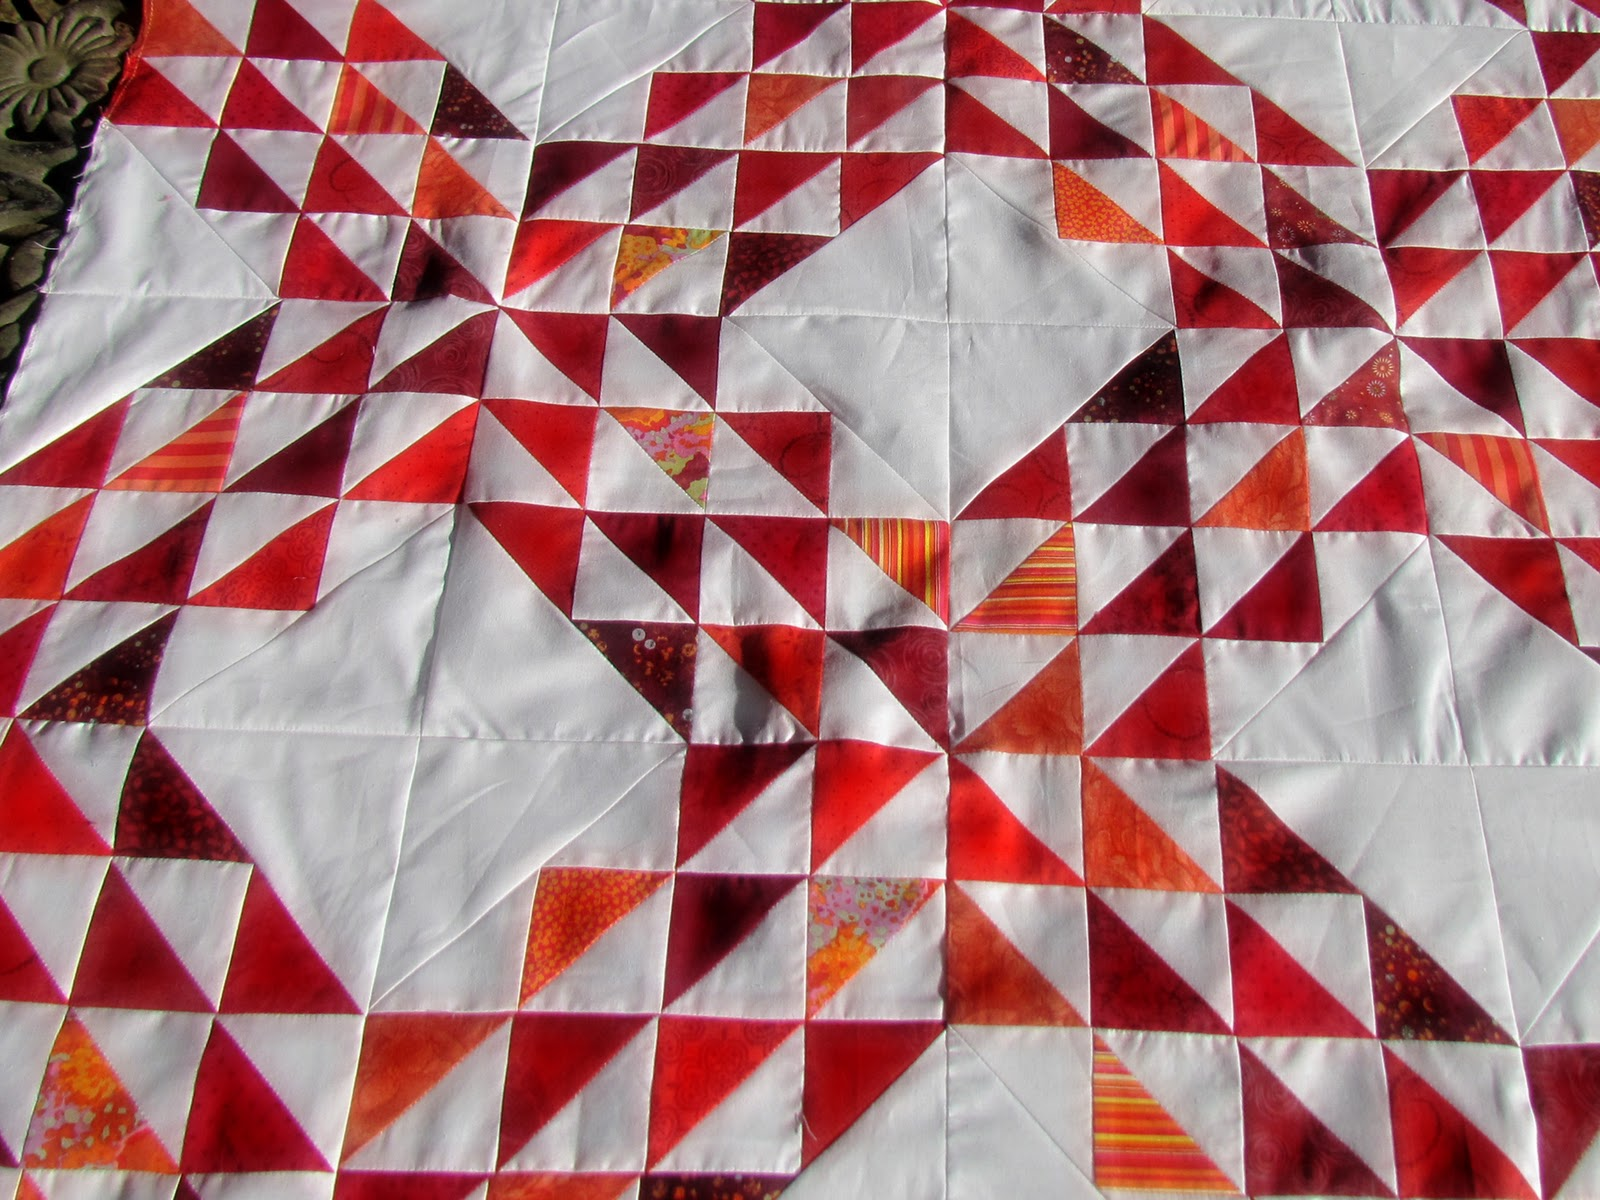 Martys Fiber Musings Ocean Waves With Red And White Half Square